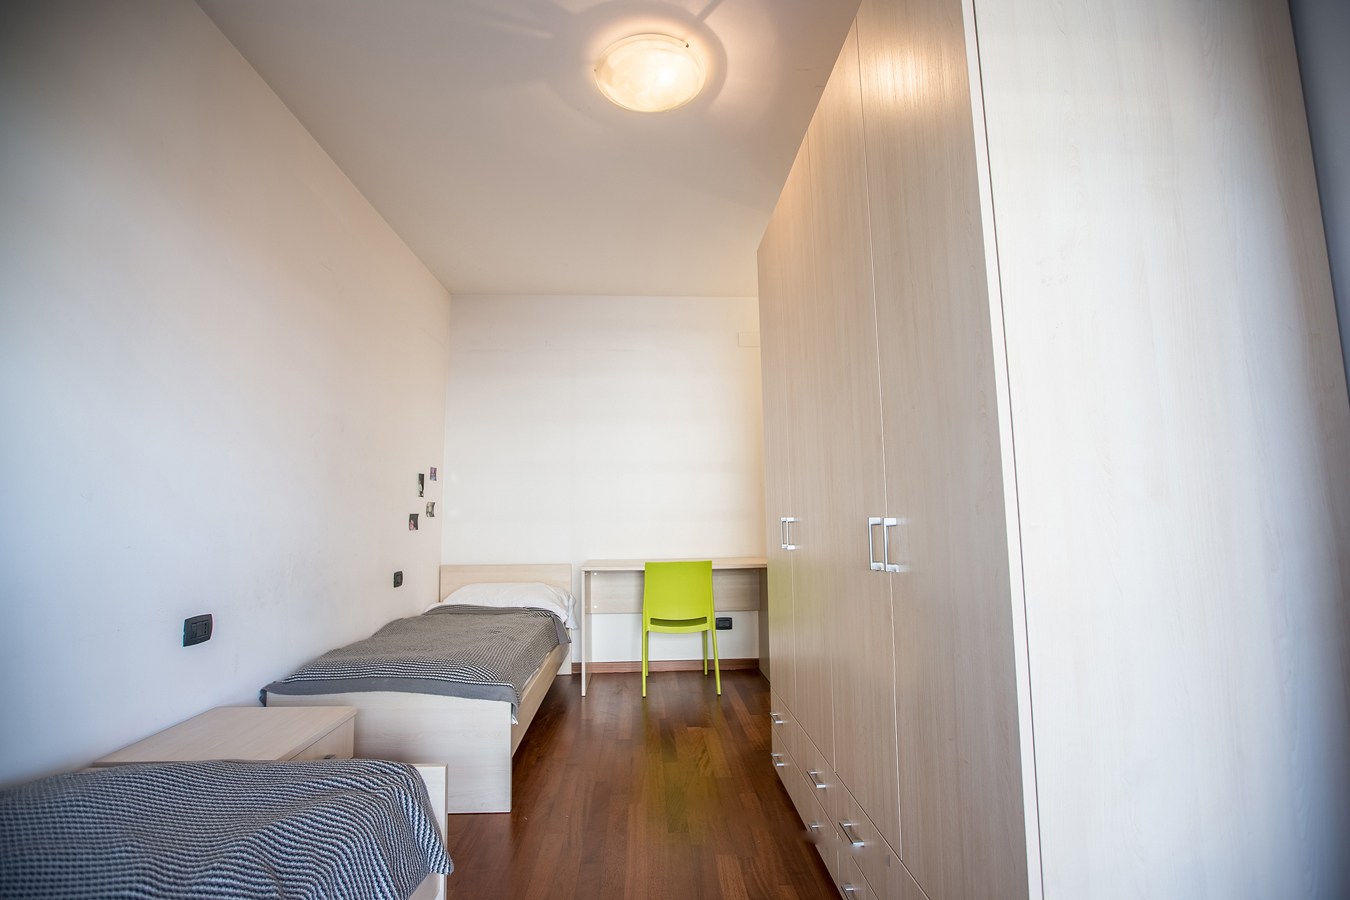 Student Accomodation for rent in double room in Via Adamello, 8, in Milano, Italy